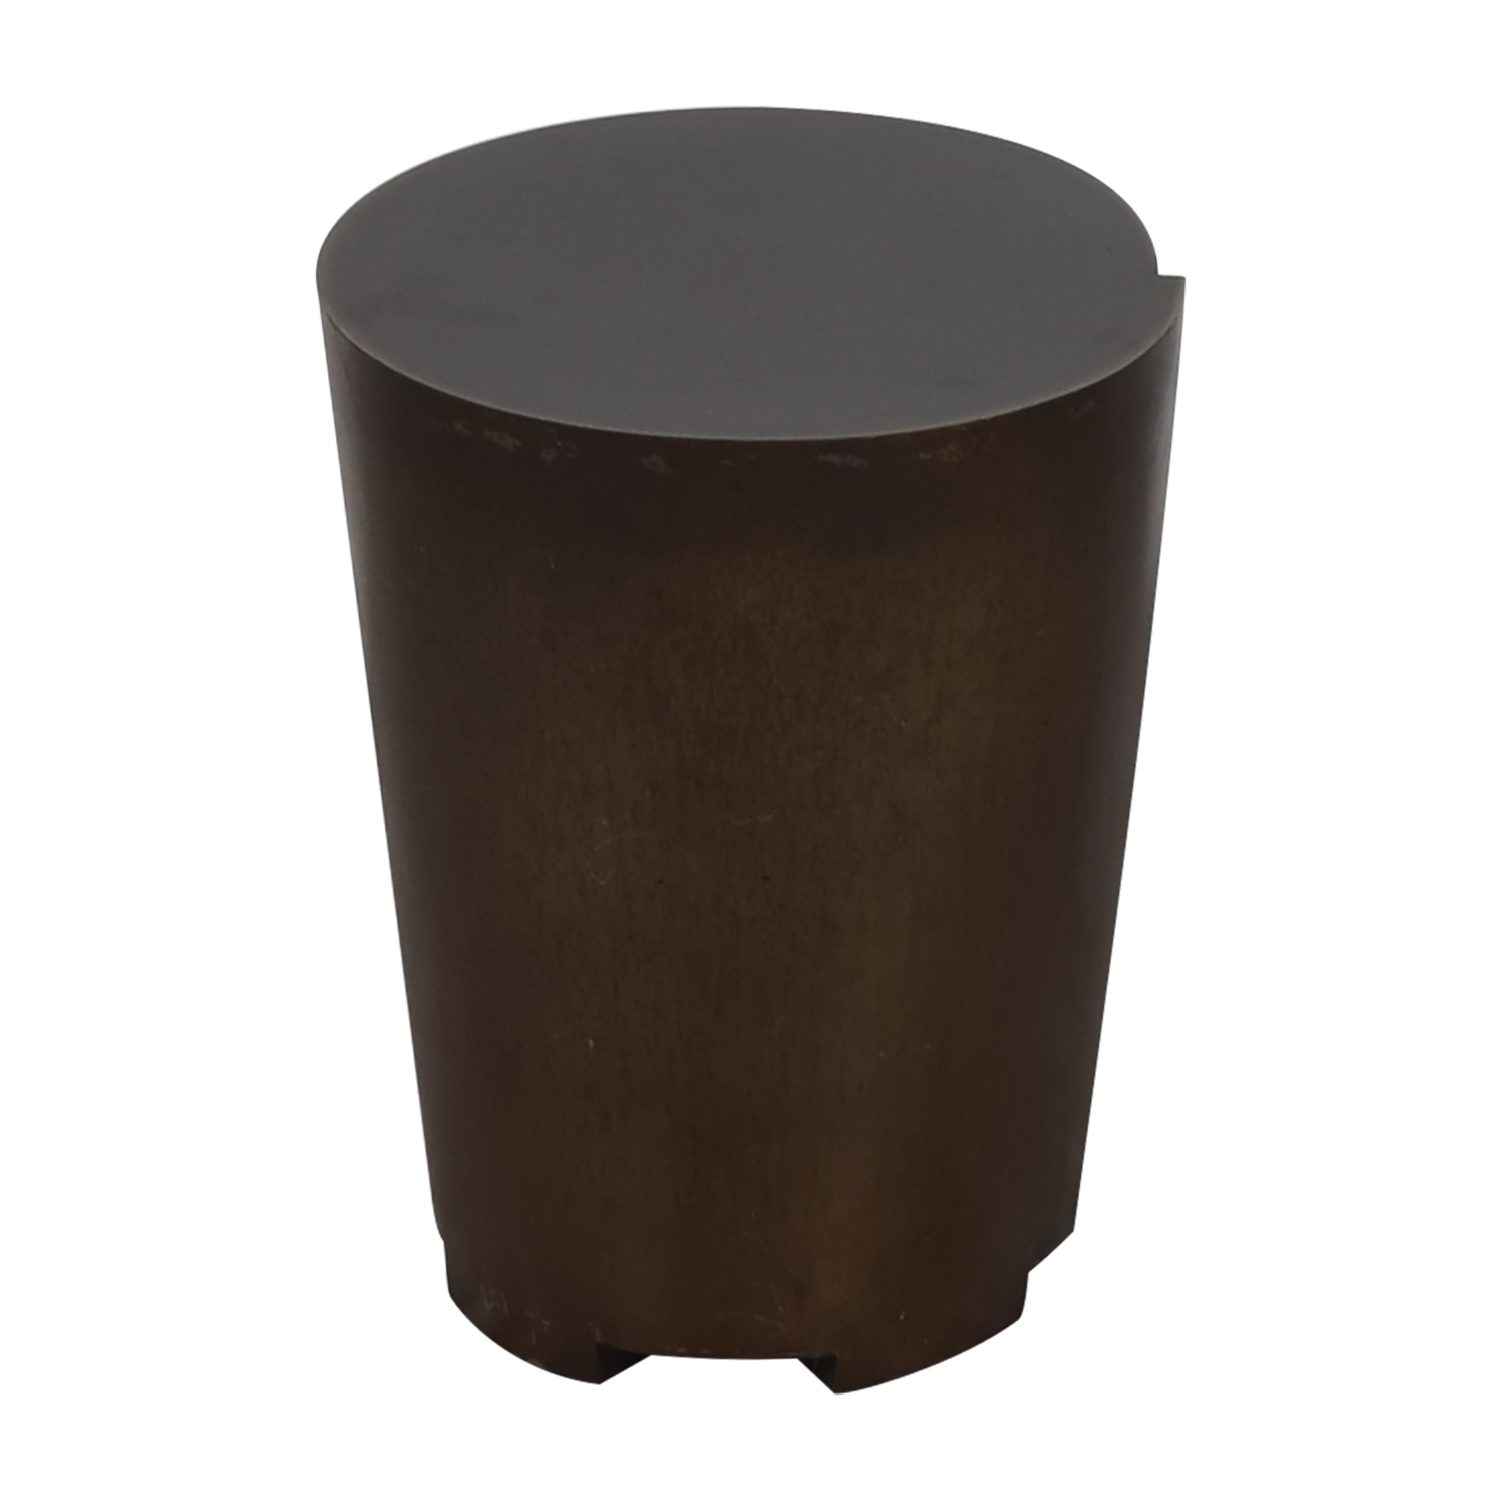 Crate & Barrel Crate & Barrel Drum Metal Table on sale